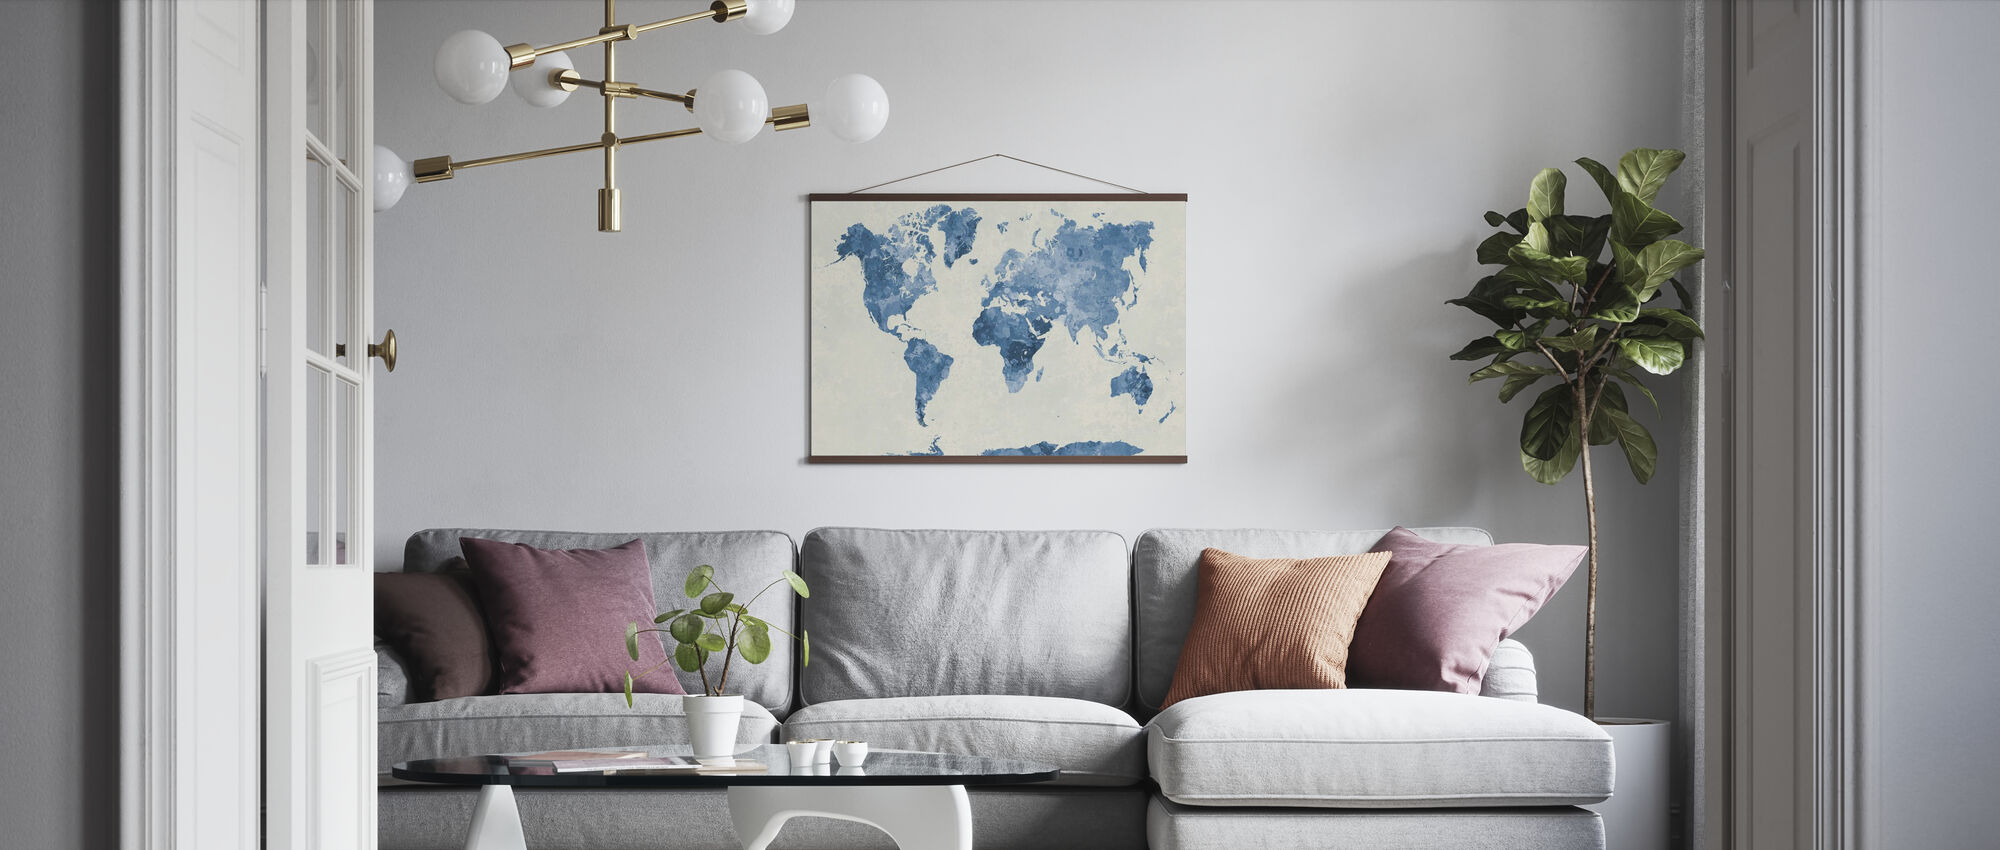 Blue World in Watercolor - Poster - Living Room